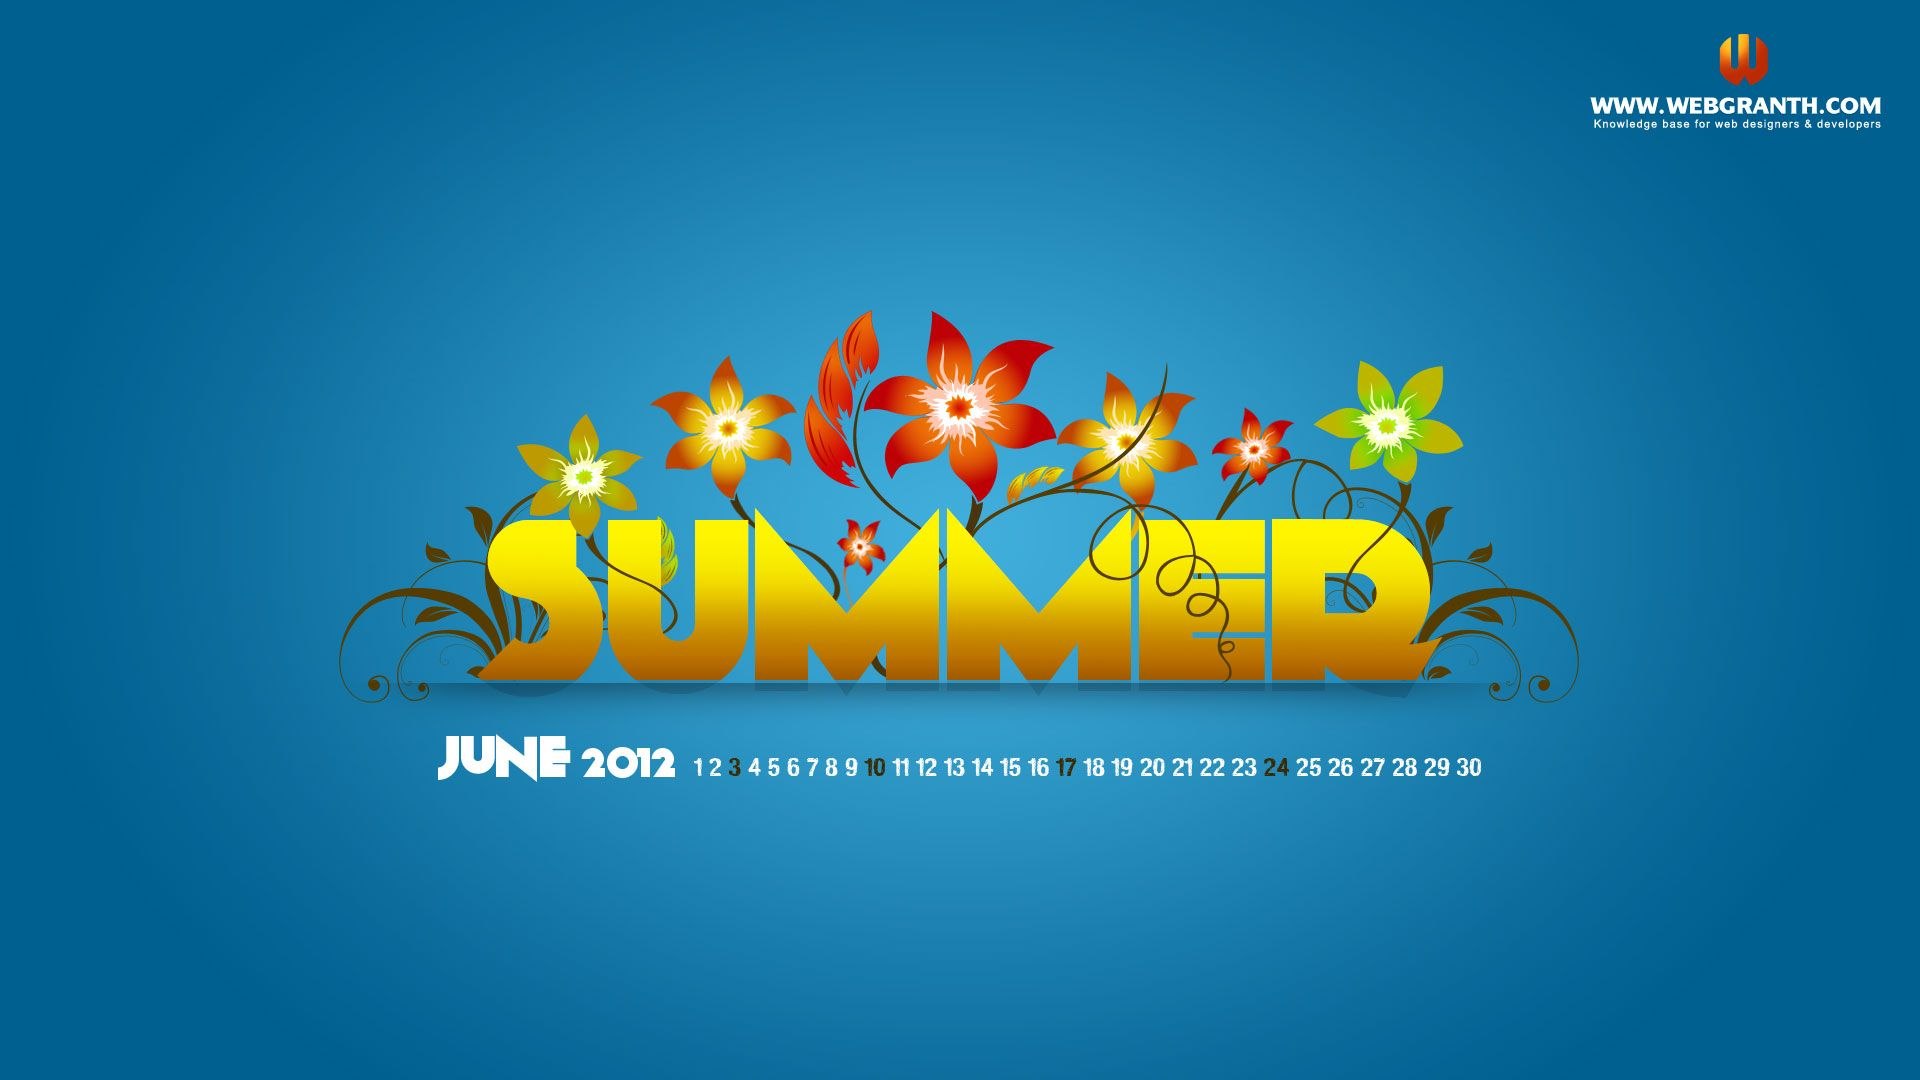 June Calendar Wallpaper 2012 Free Download Summer Hd Wallpaper Calendar Wallpaper Summer Wallpaper Wallpaper